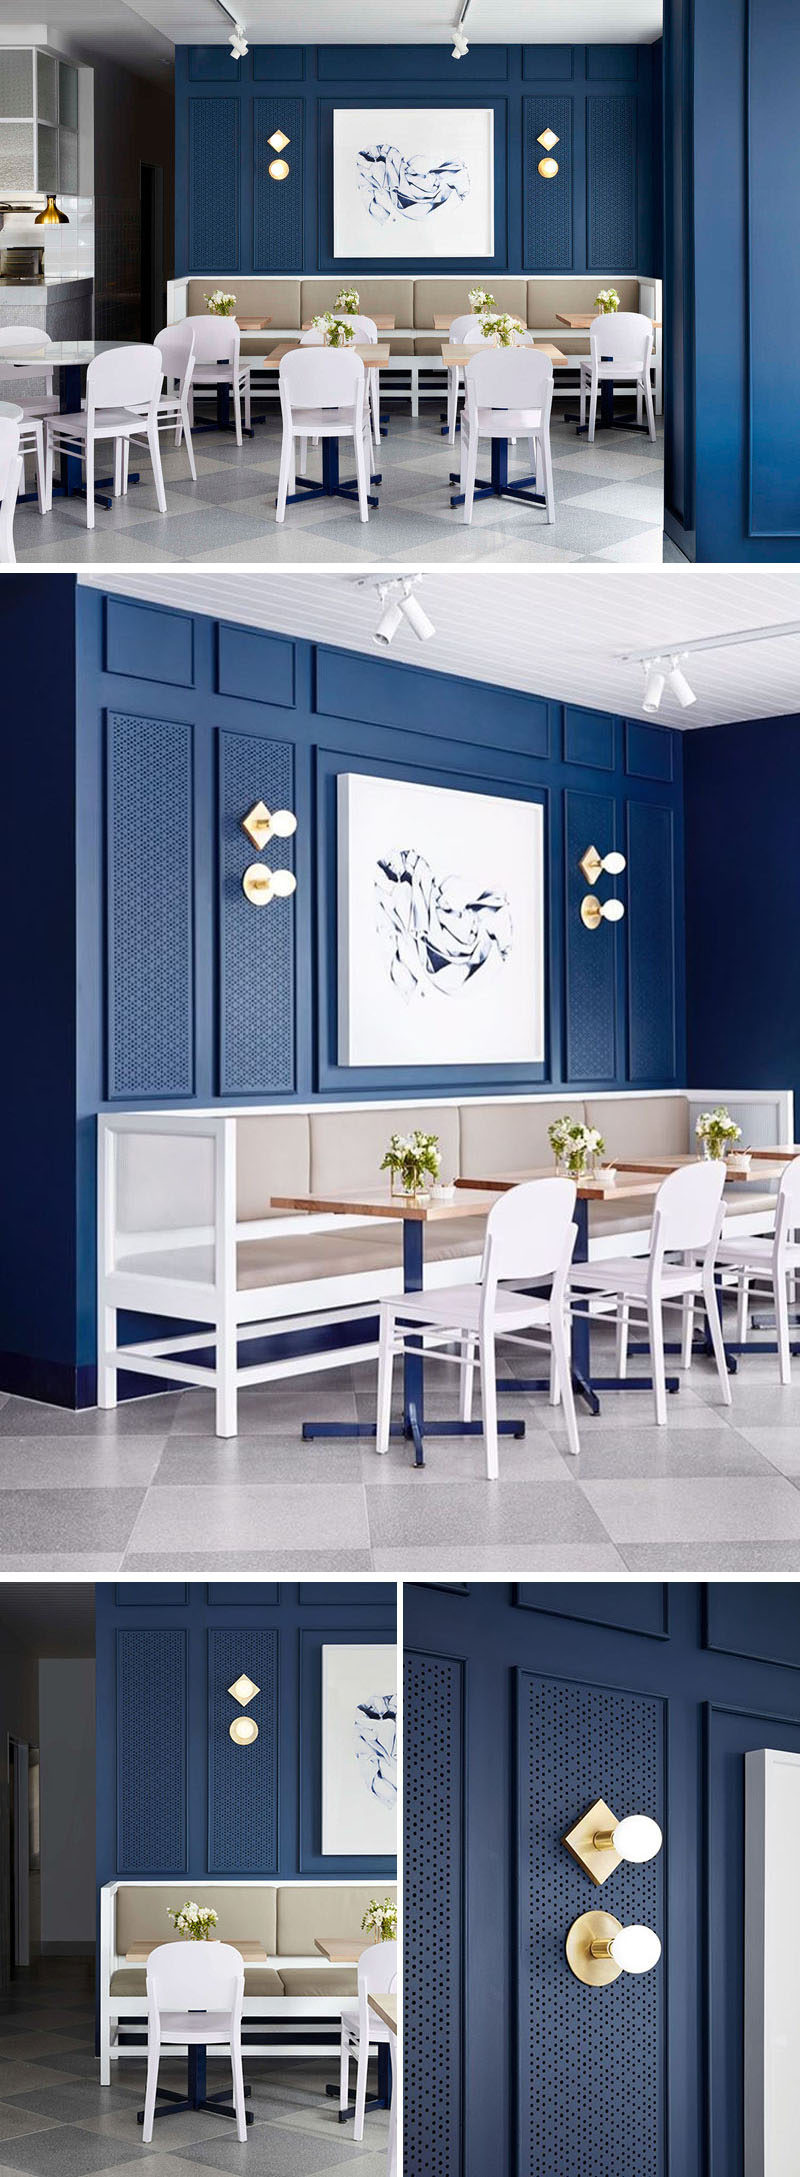 Artwork above the banquette seating in this cafe has been perfectly framed with moulding and lighting.